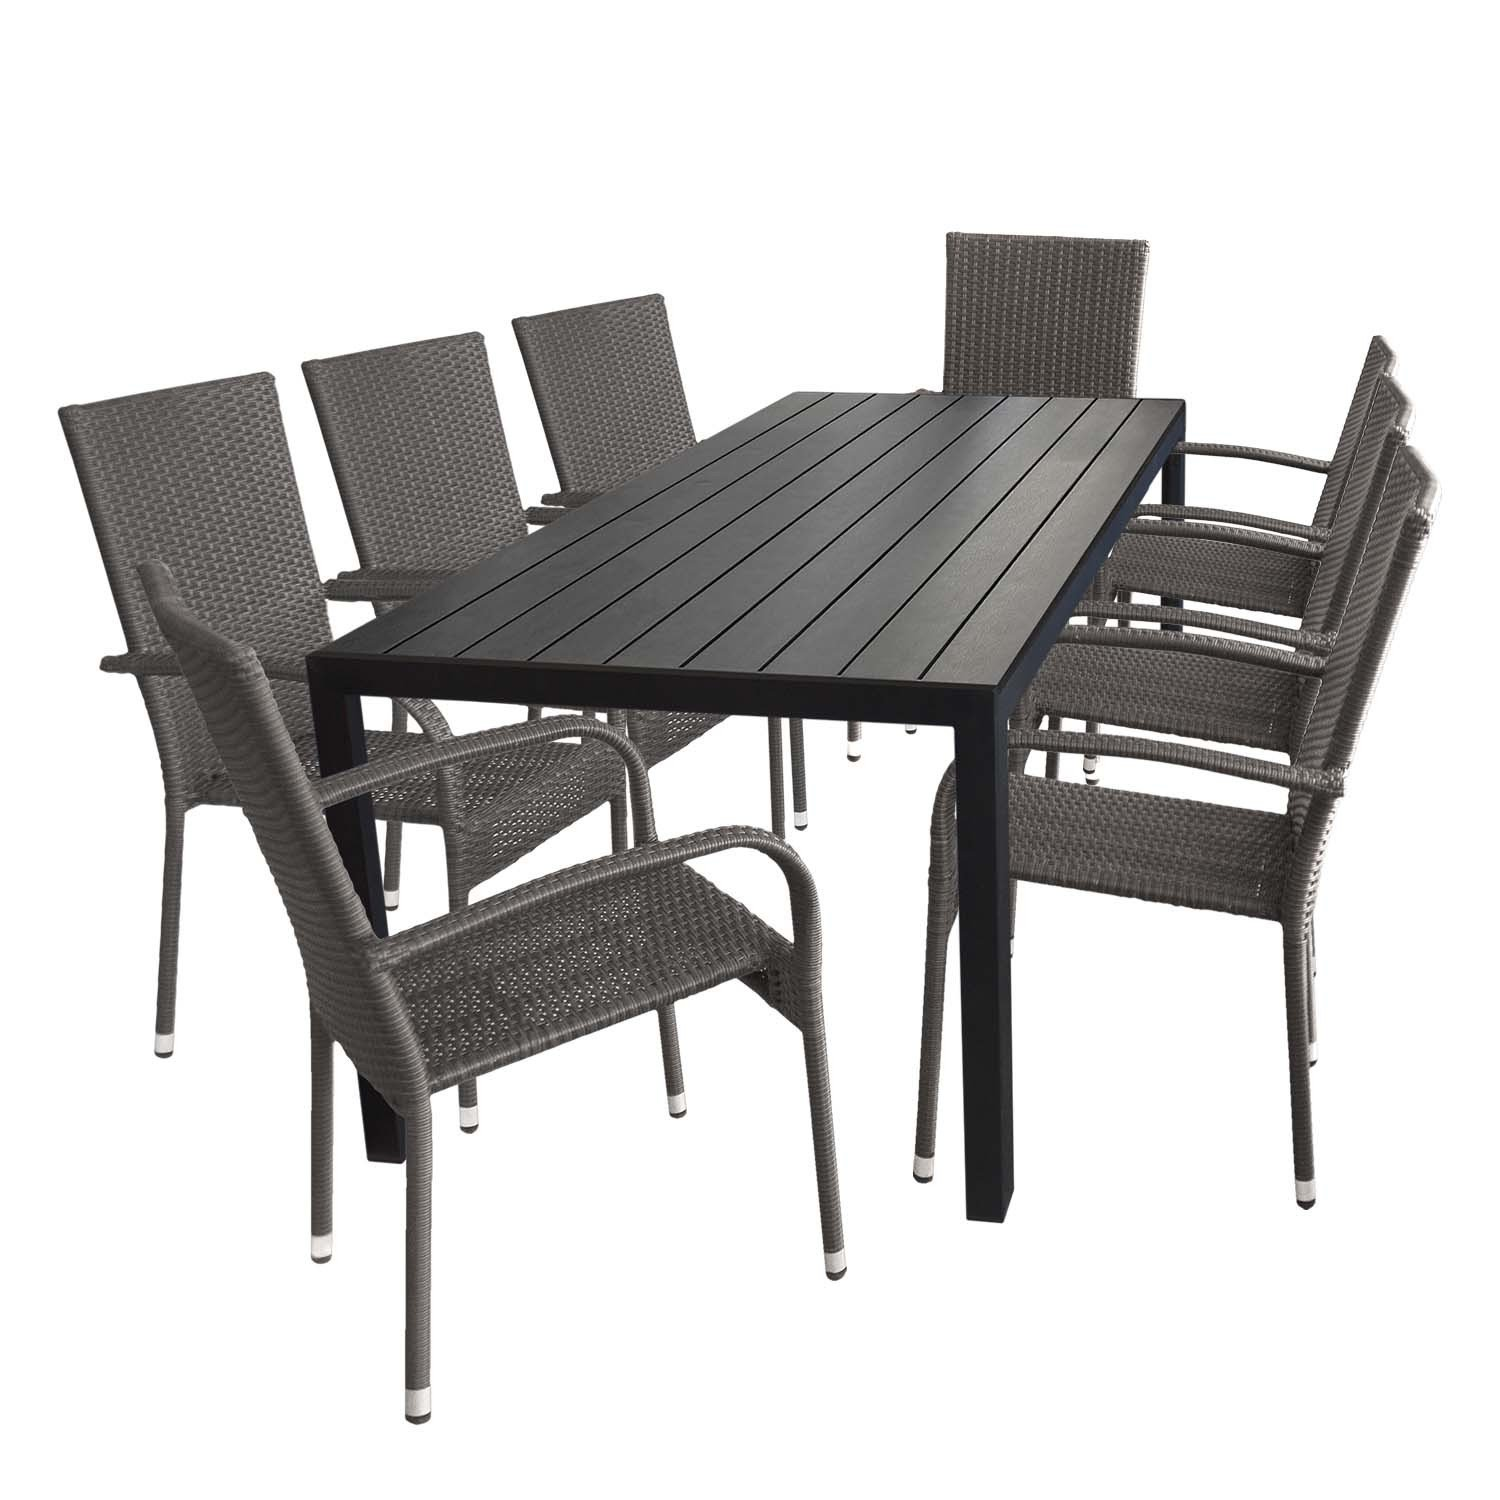 9tlg terrassenm bel set gartentisch aluminium polywood 205x90cm schwarz 8x stapelbarer. Black Bedroom Furniture Sets. Home Design Ideas